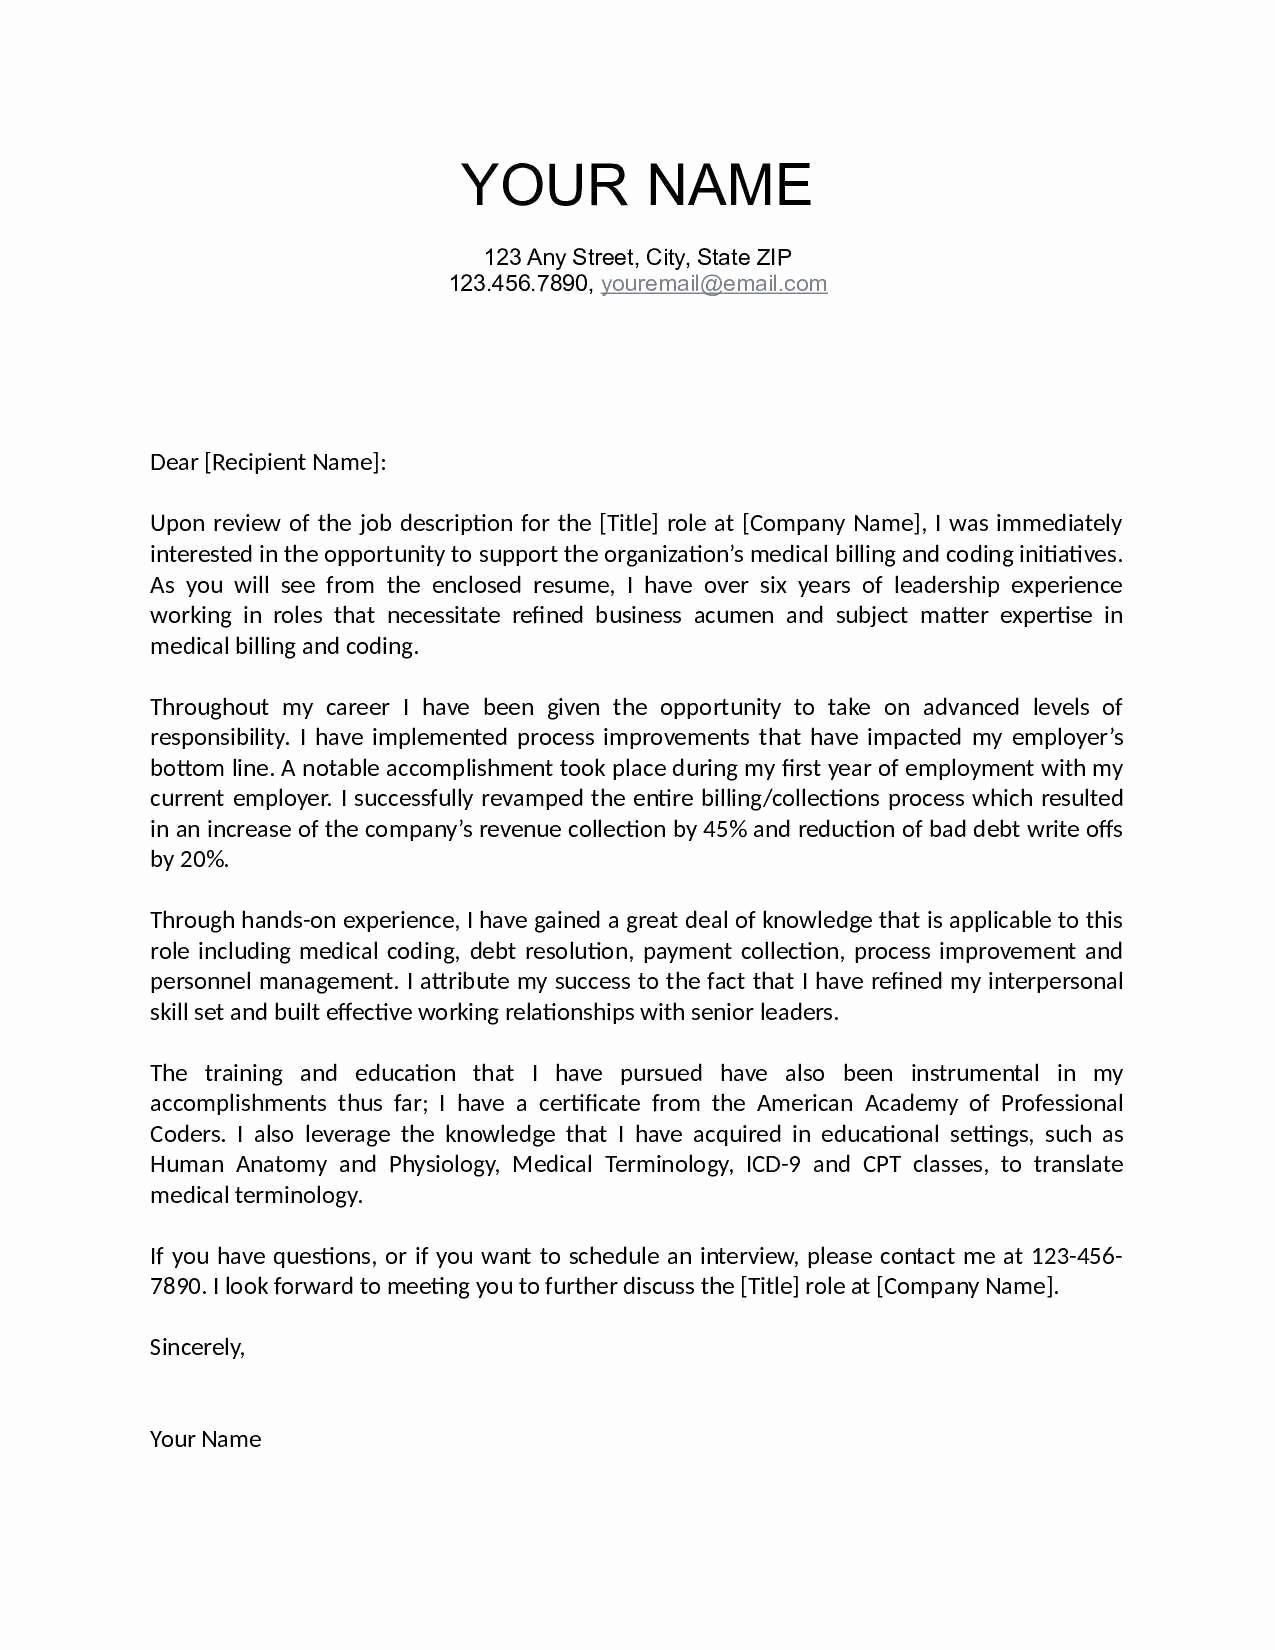 successful cover letter template example-Writing A Good Cover Letter Beautiful Cover Letter Overseas Job New Job Fer Letter Template Us Copy Od 13-t